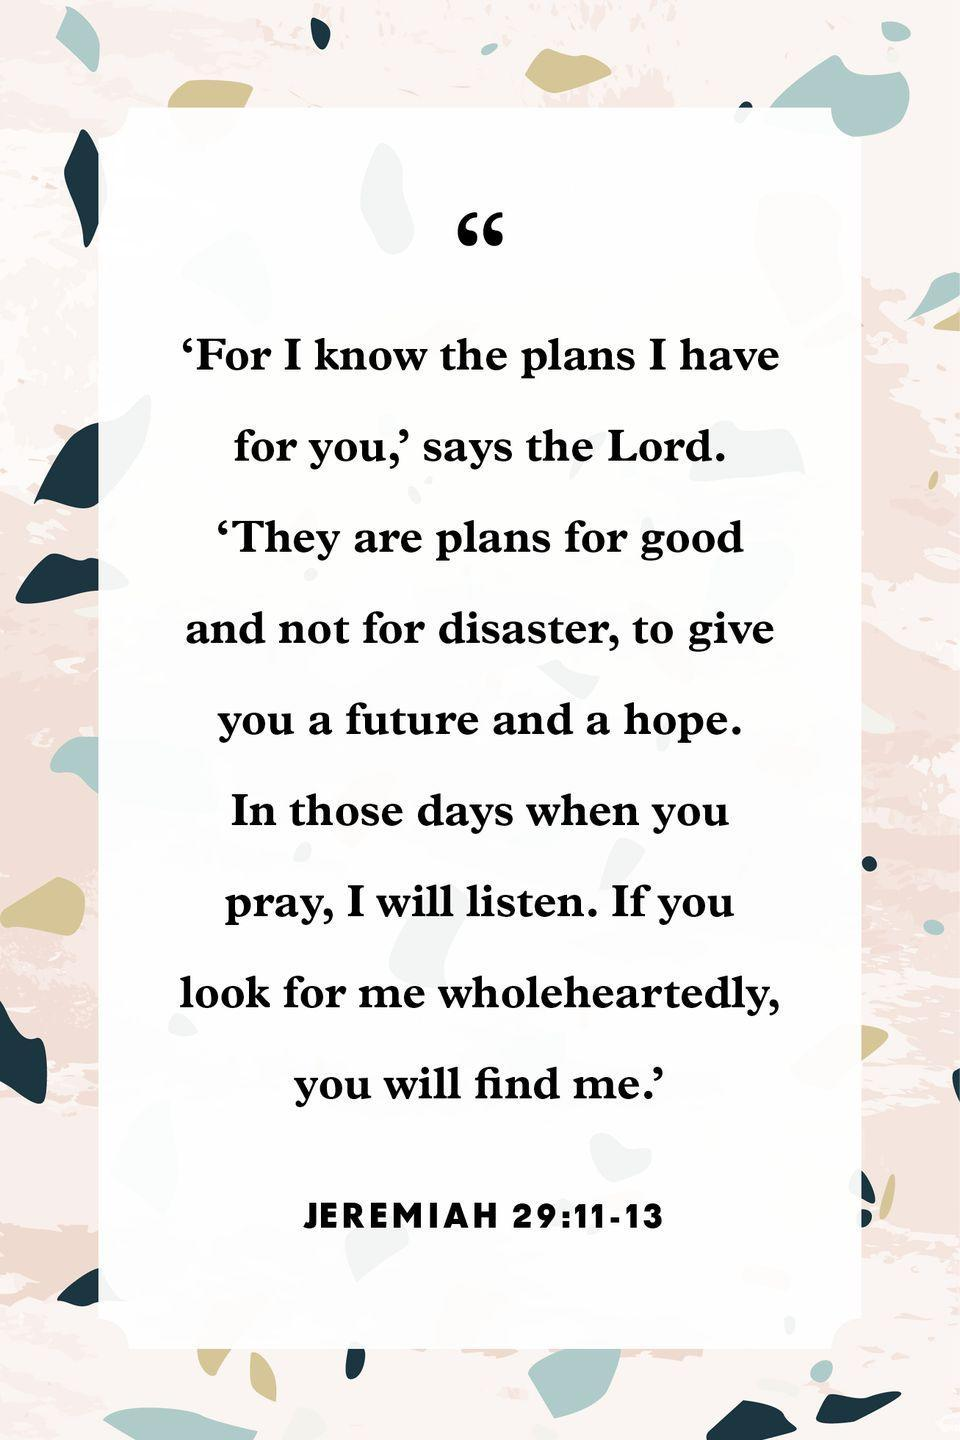 "<p>"" 'For I know the plans I have for you,' says the Lord. 'They are plans for good and not for disaster, to give you a future and a hope. In those days when you pray, I will listen. If you look for me wholeheartedly, you will find me.' ""</p>"